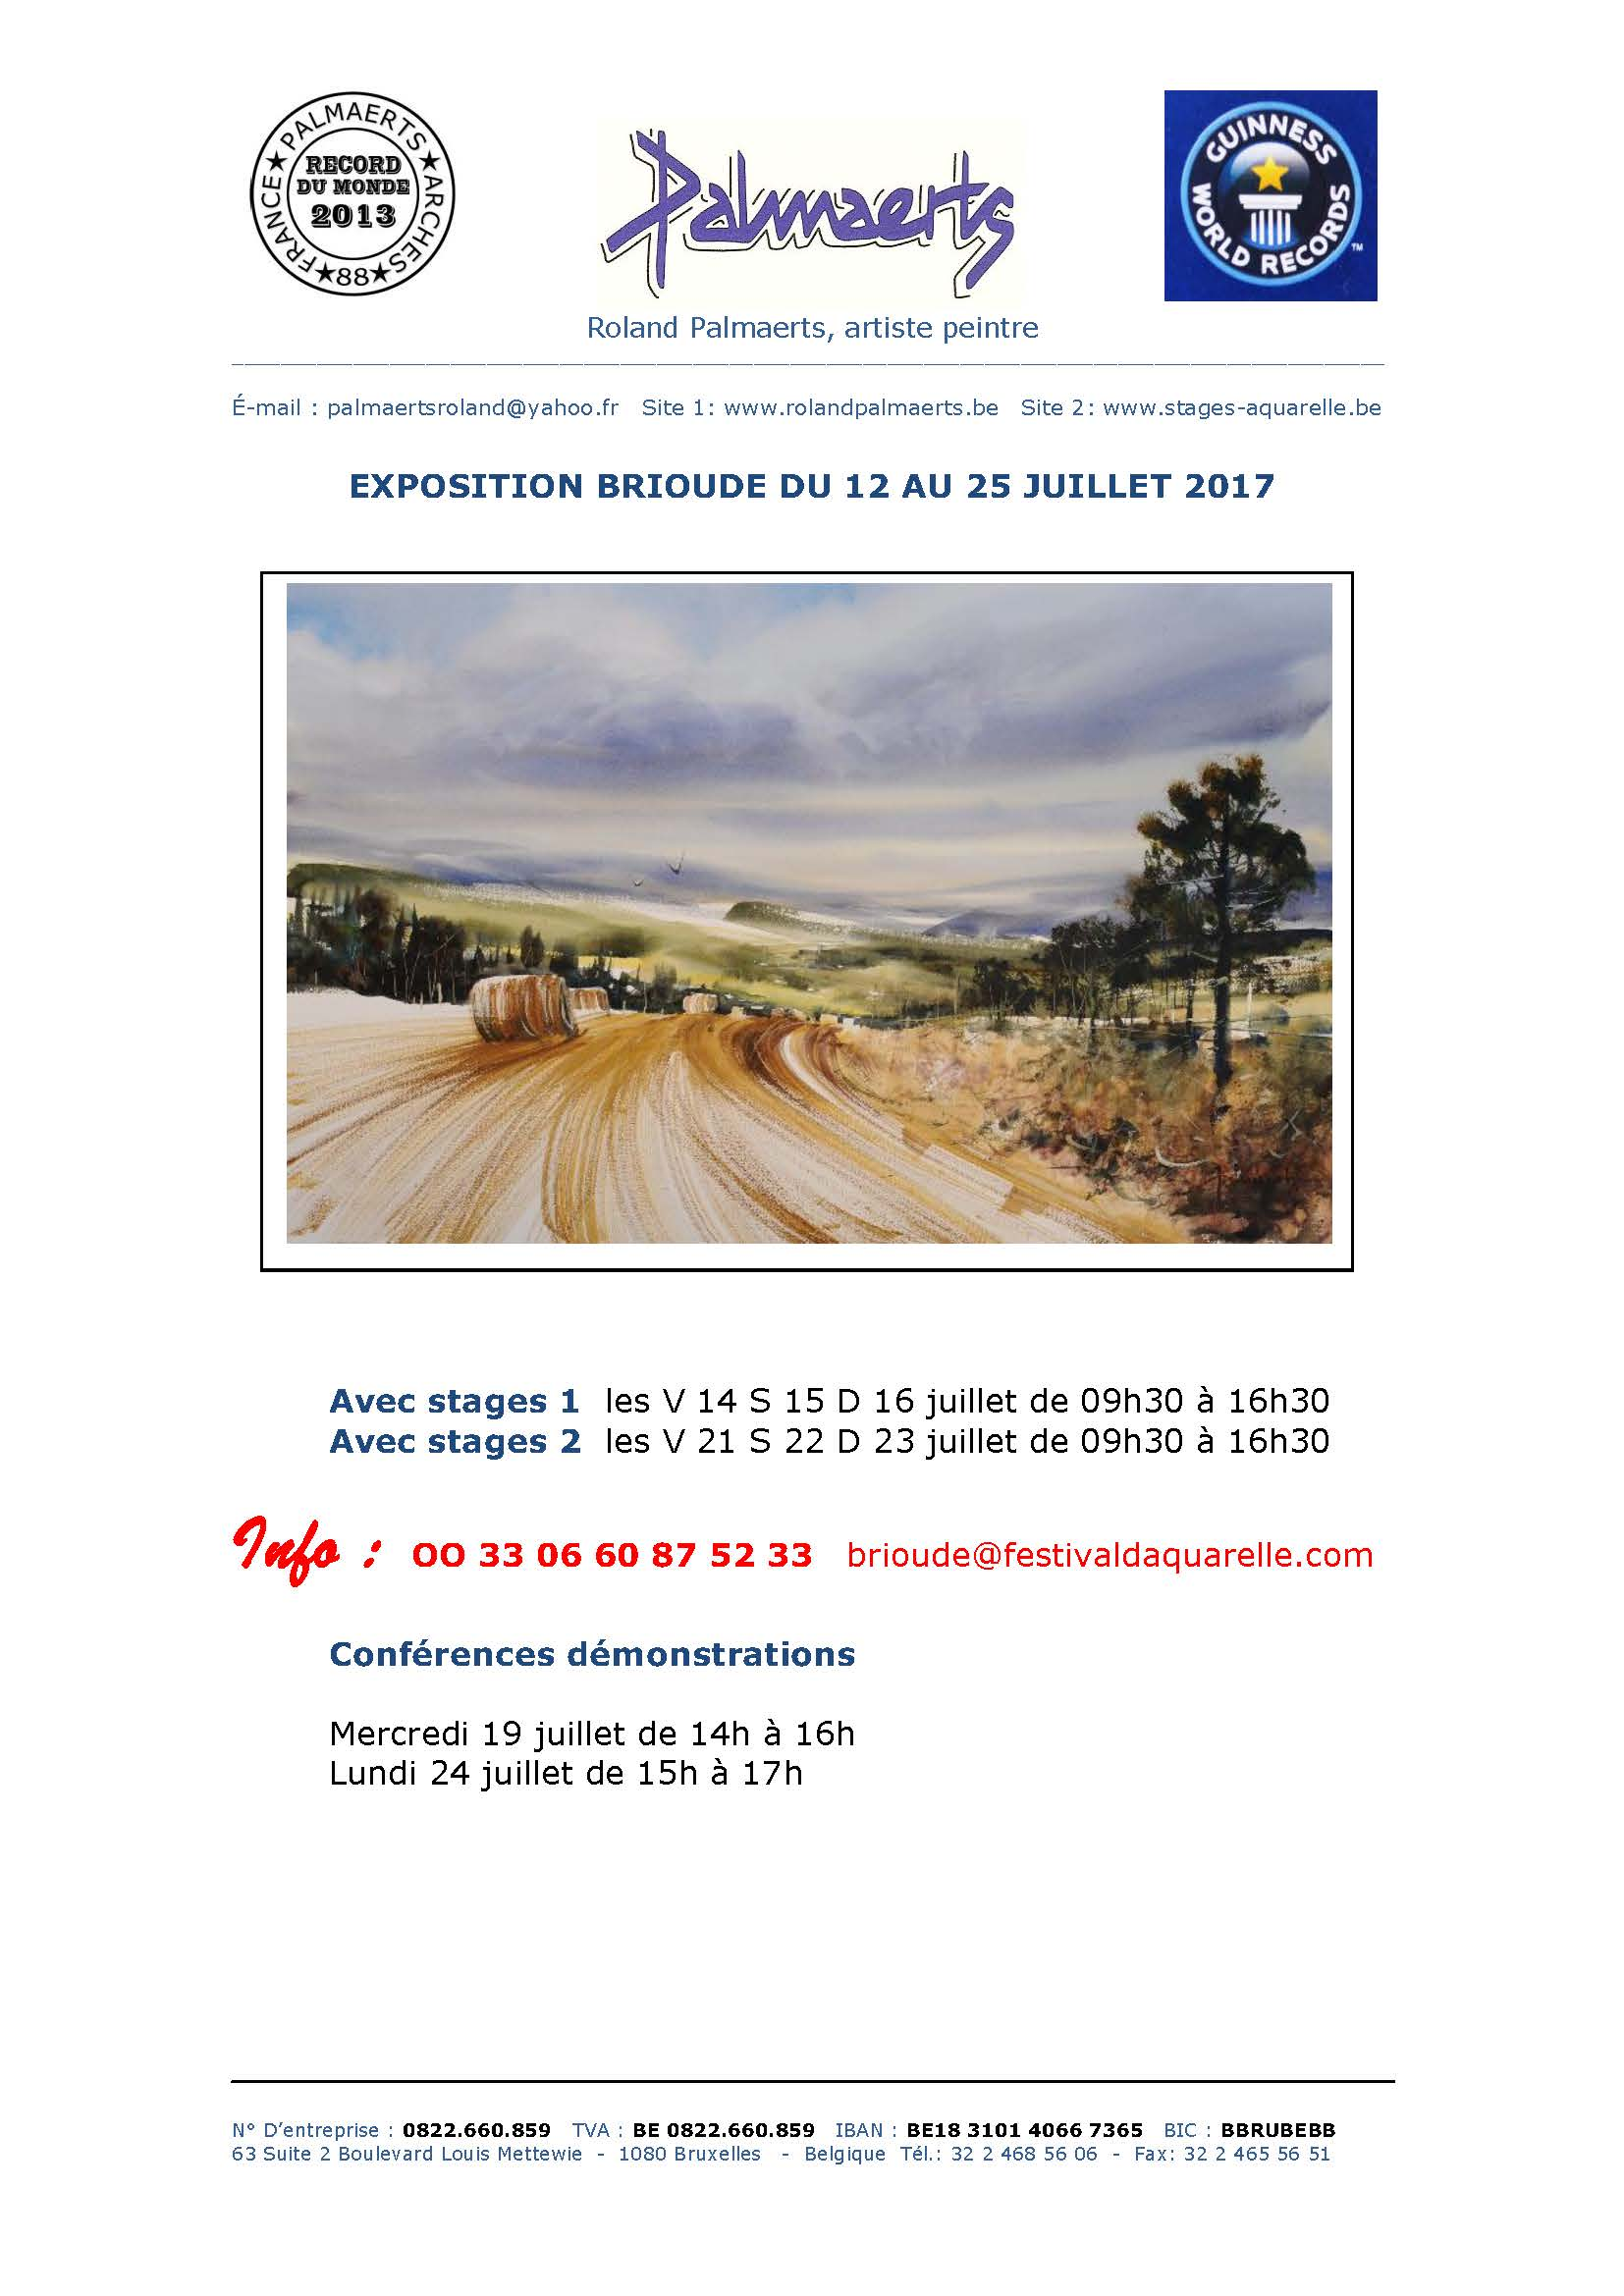 EXPO Stages BRIOUDE 2017